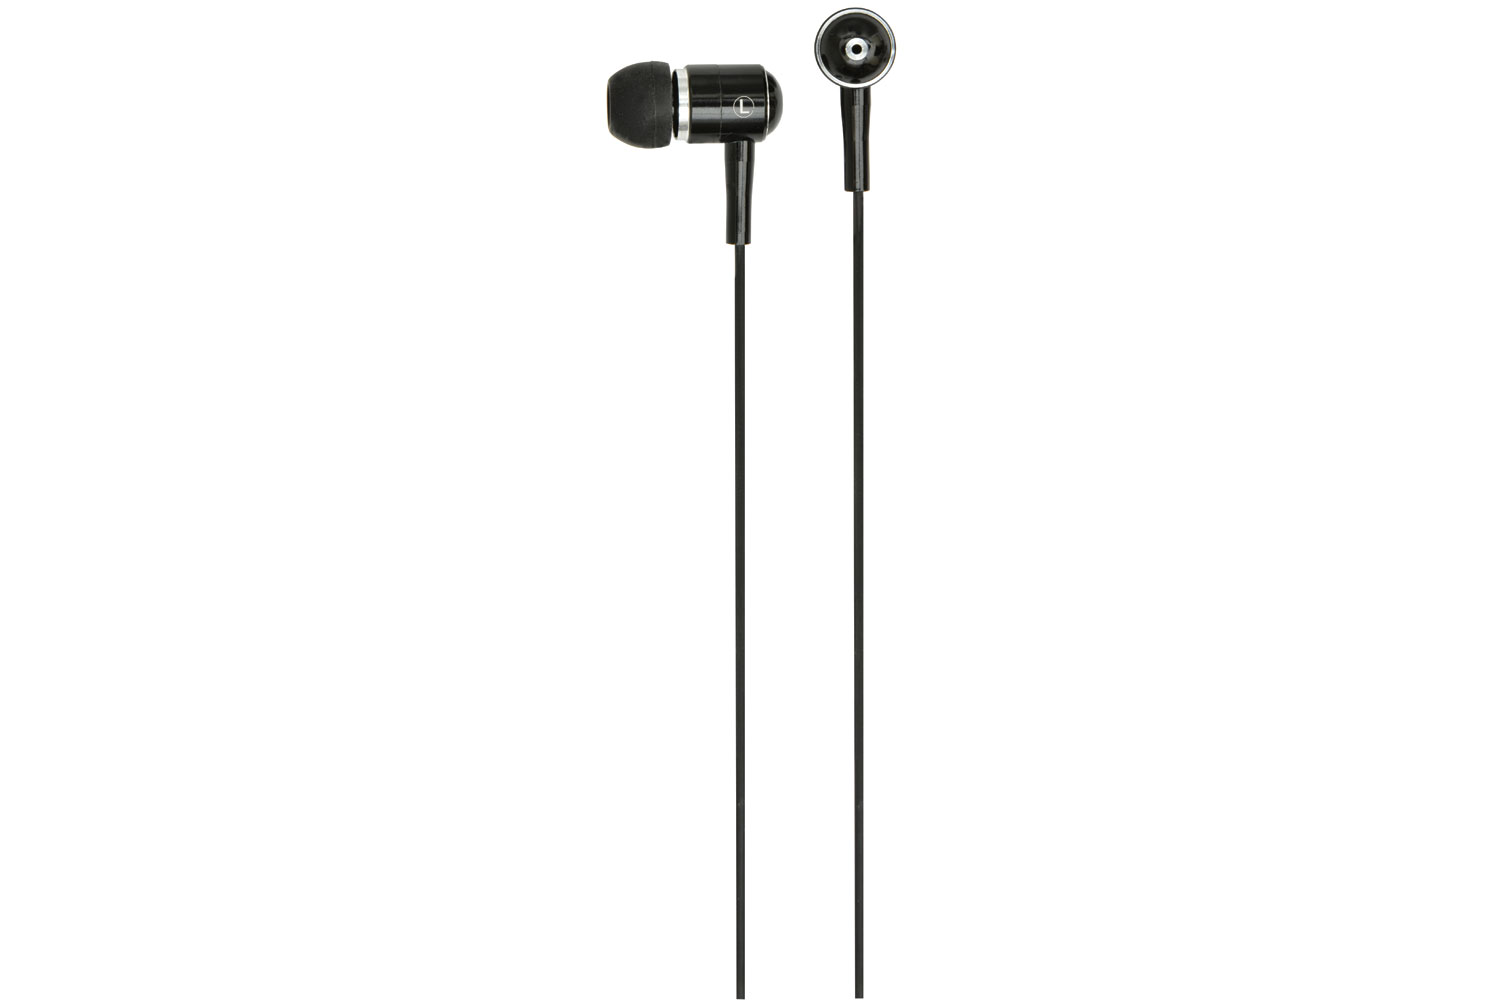 HQ2B Metal In-ear Earphones, Black